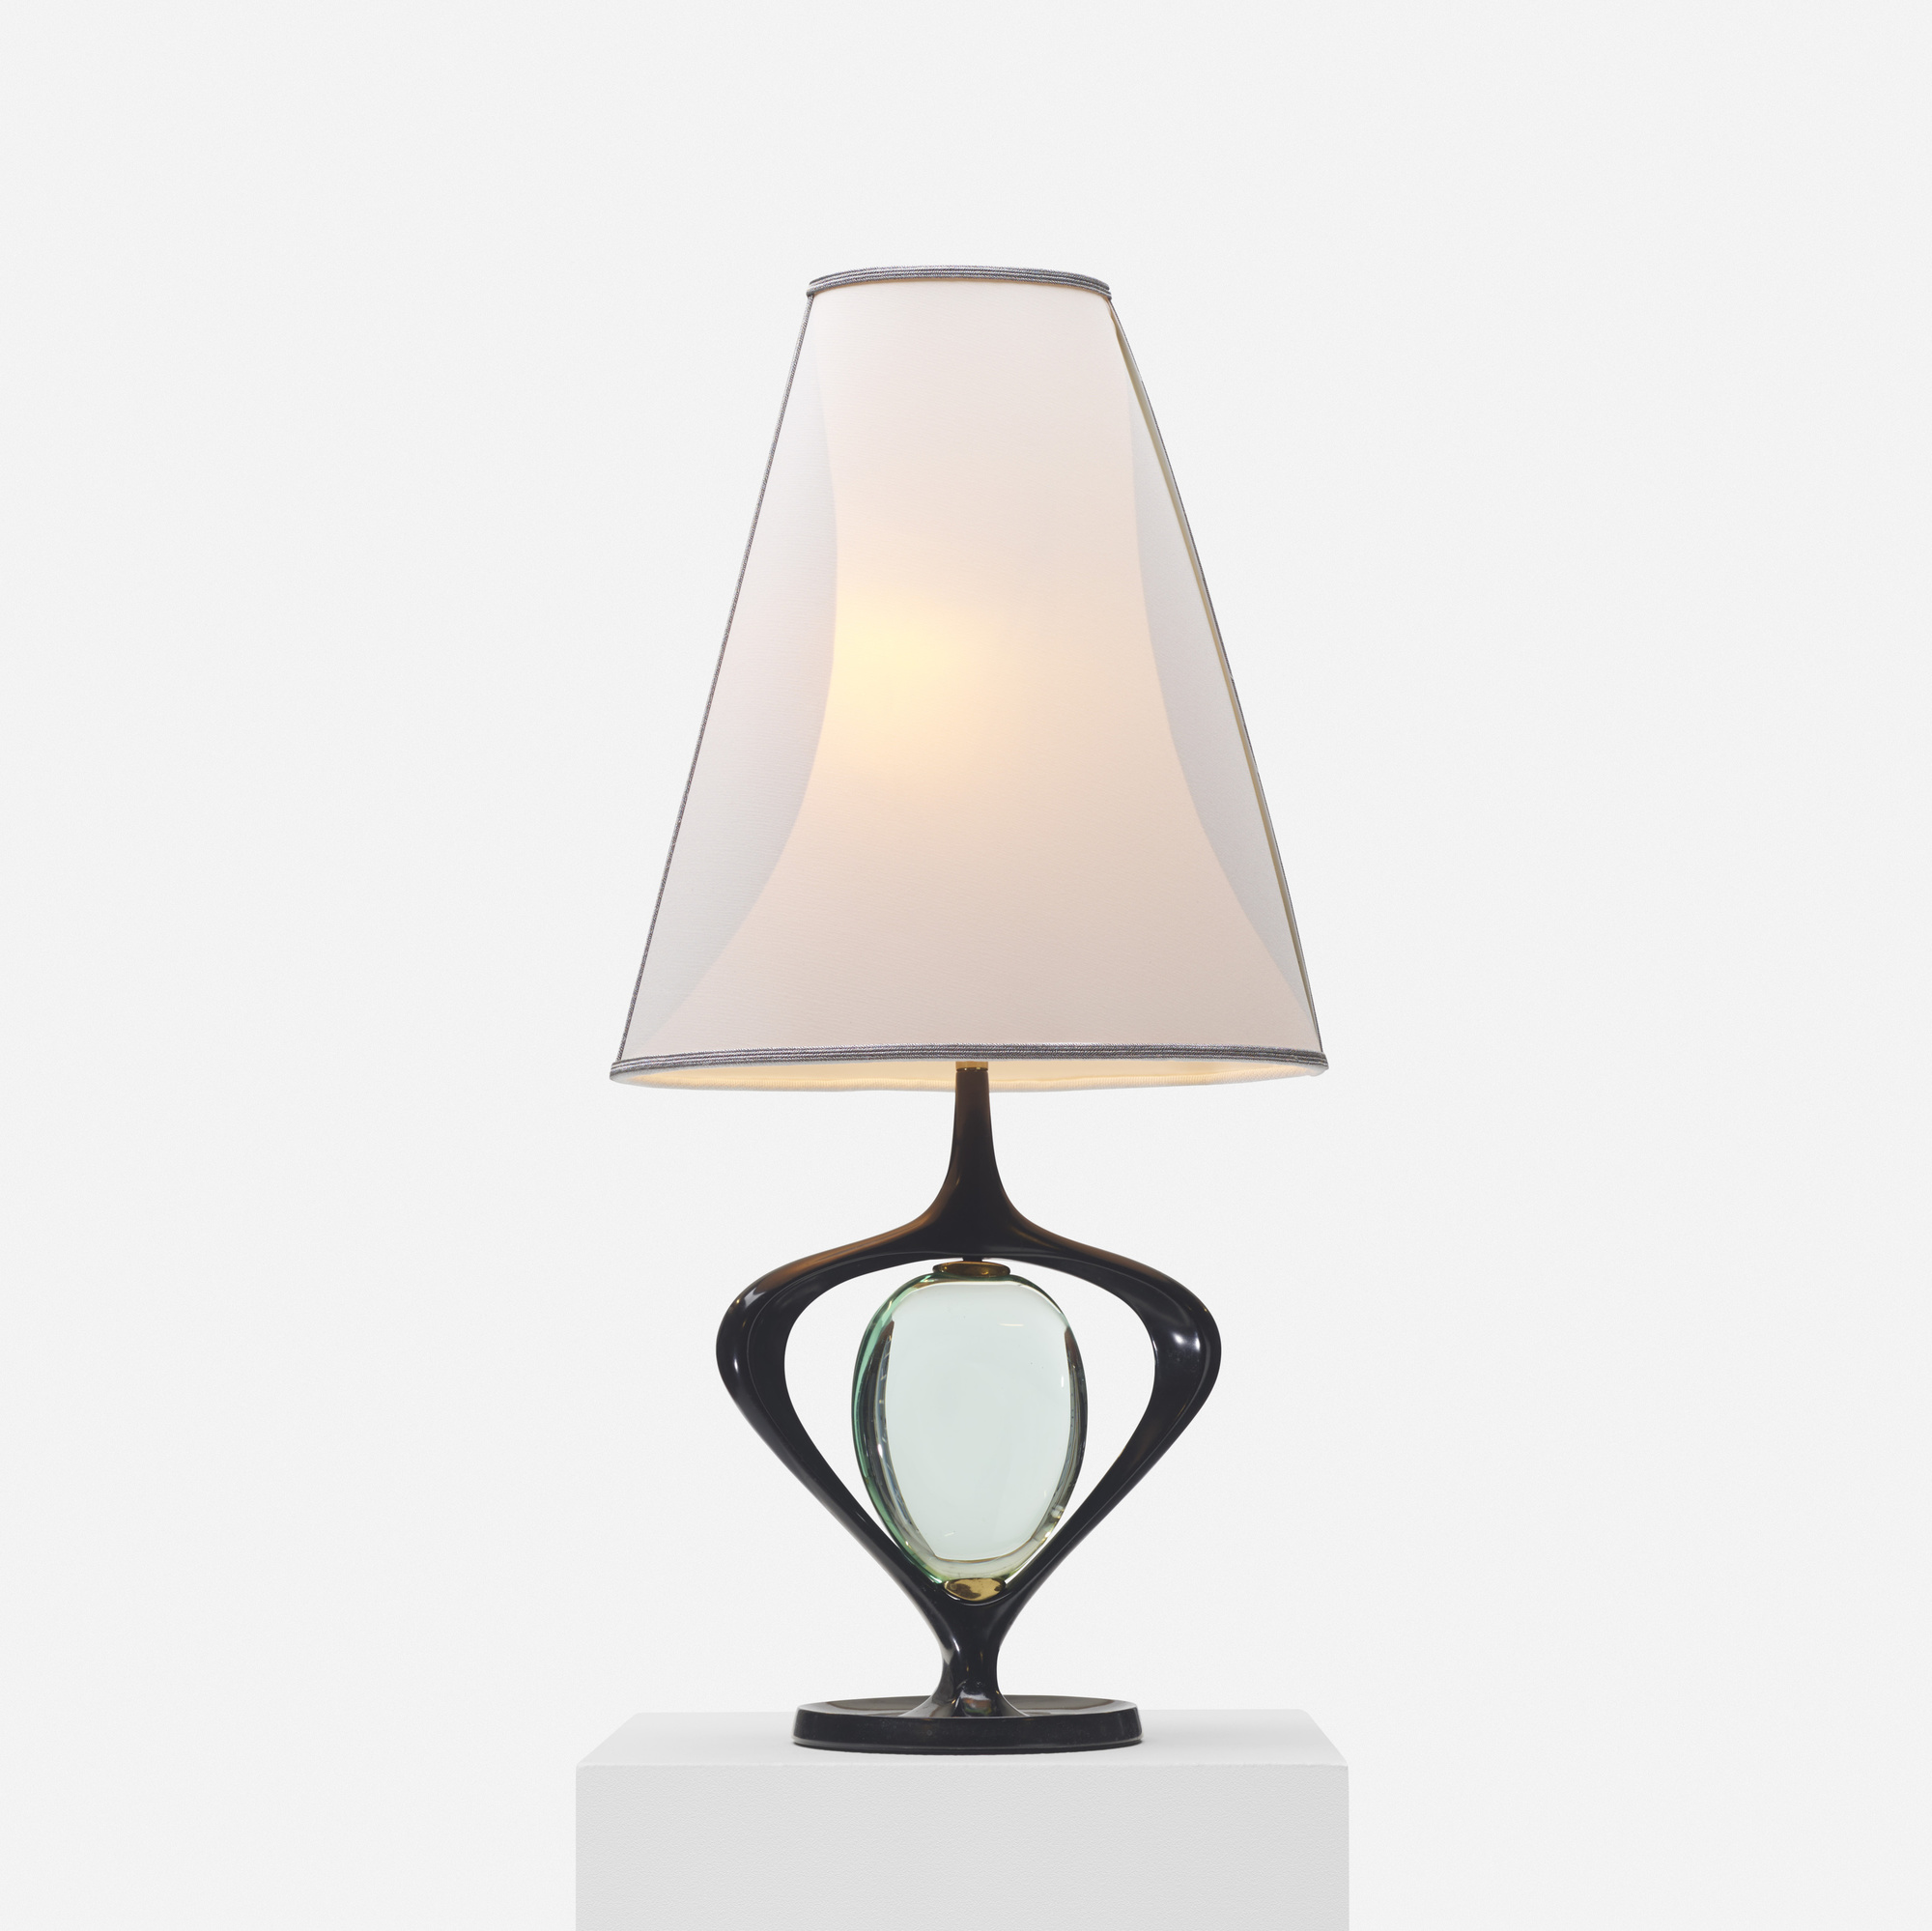 190: Max Ingrand / rare table lamp (1 of 2)